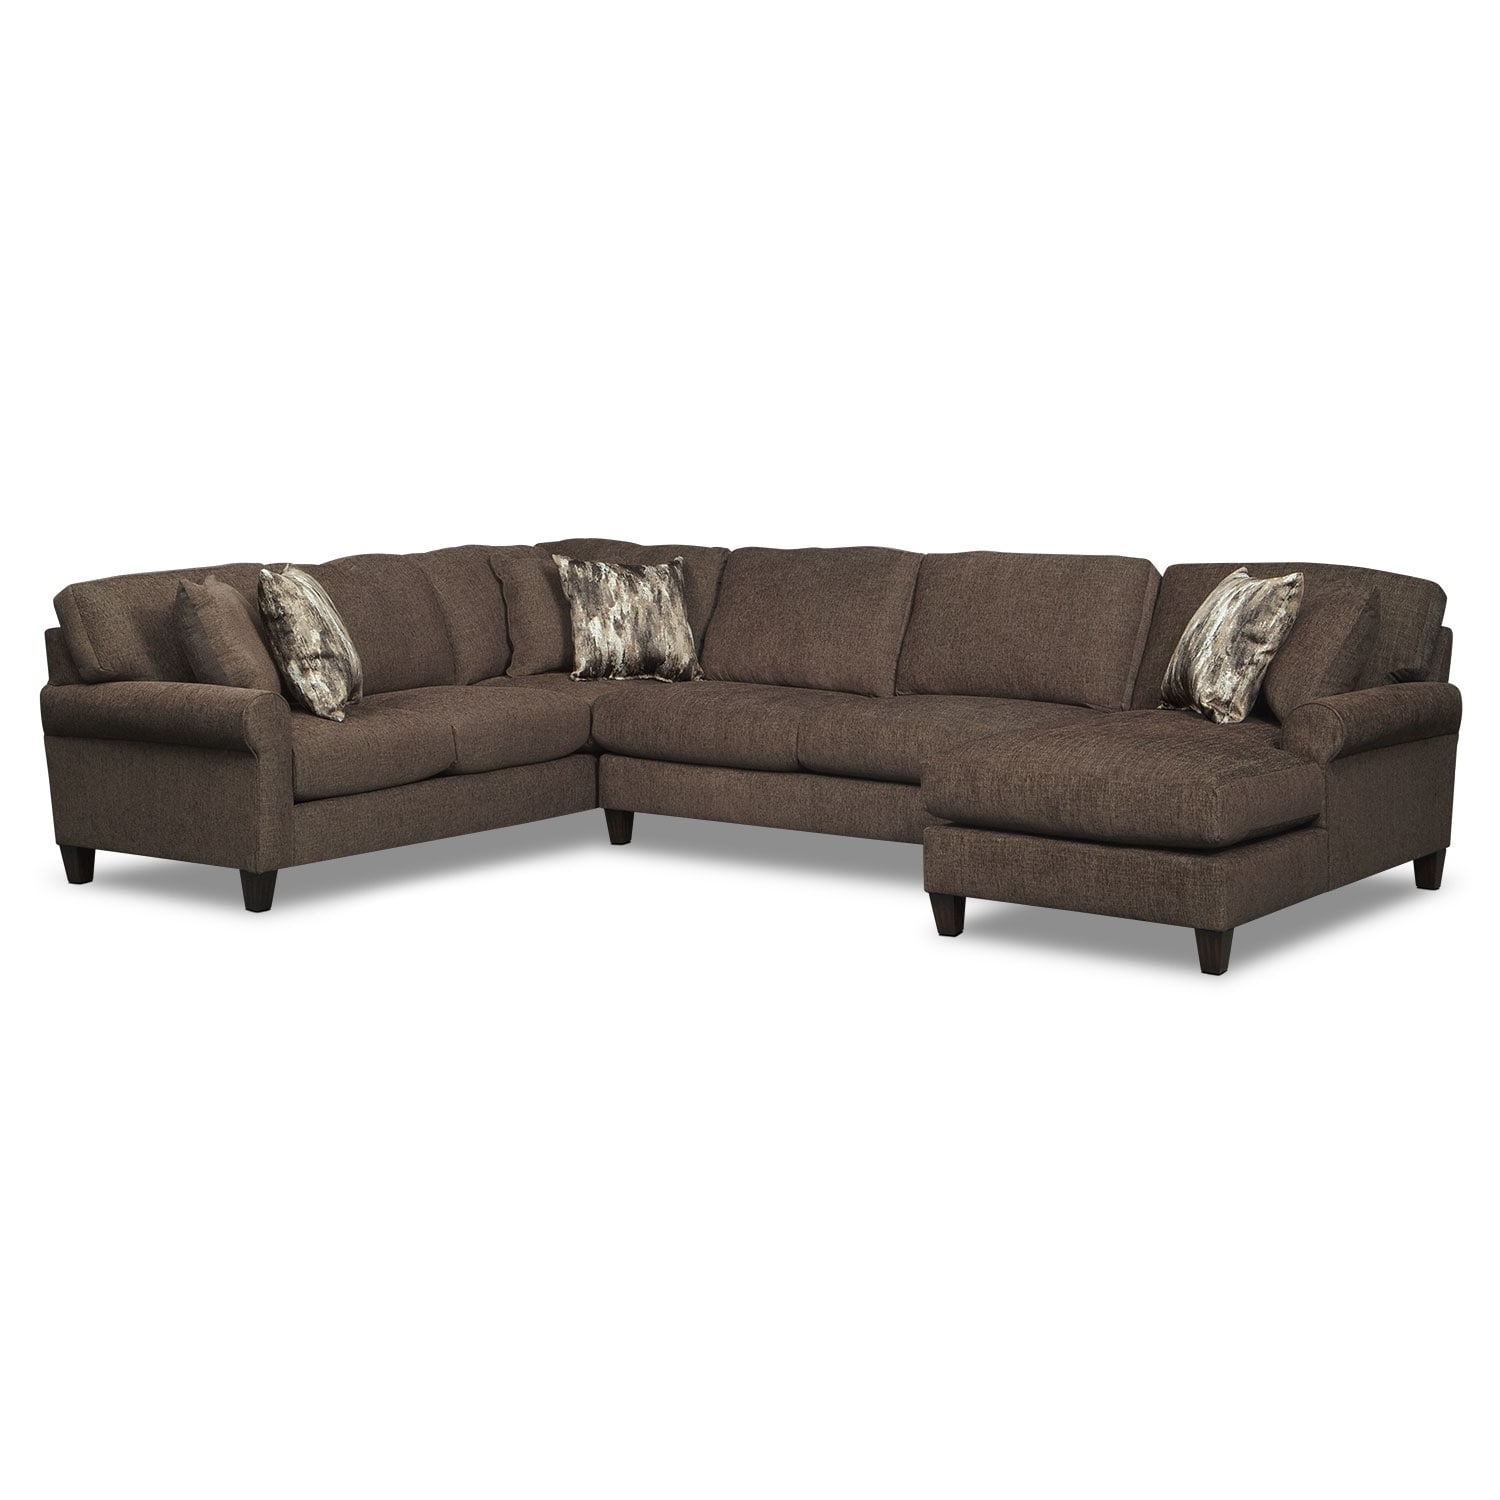 Living Room Furniture - Karma Smoke 3 Pc. Sectional with Right-Facing Chaise